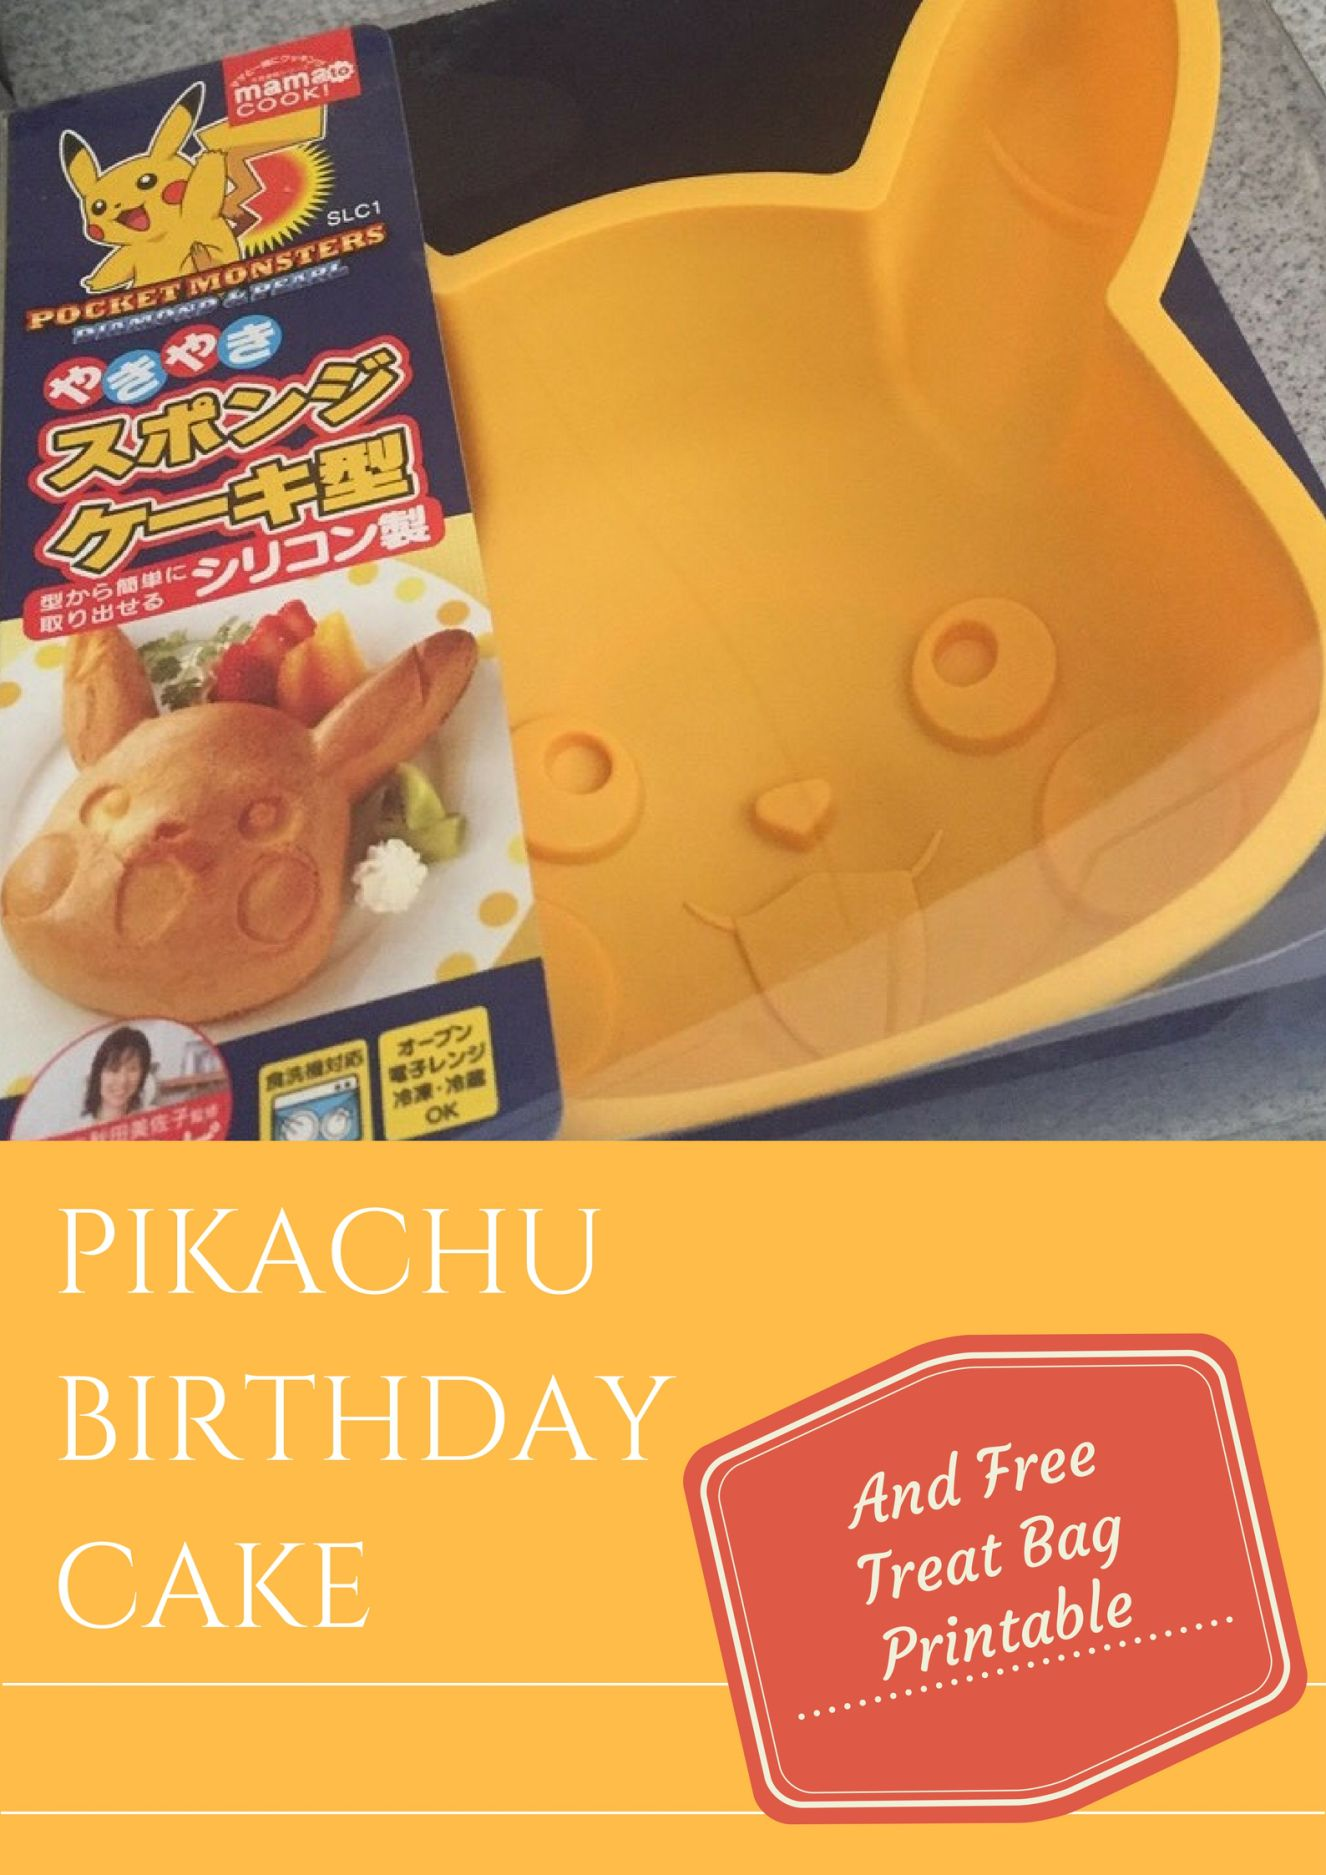 DIY Pokemon birthday cake with Pikachu cake mold and free